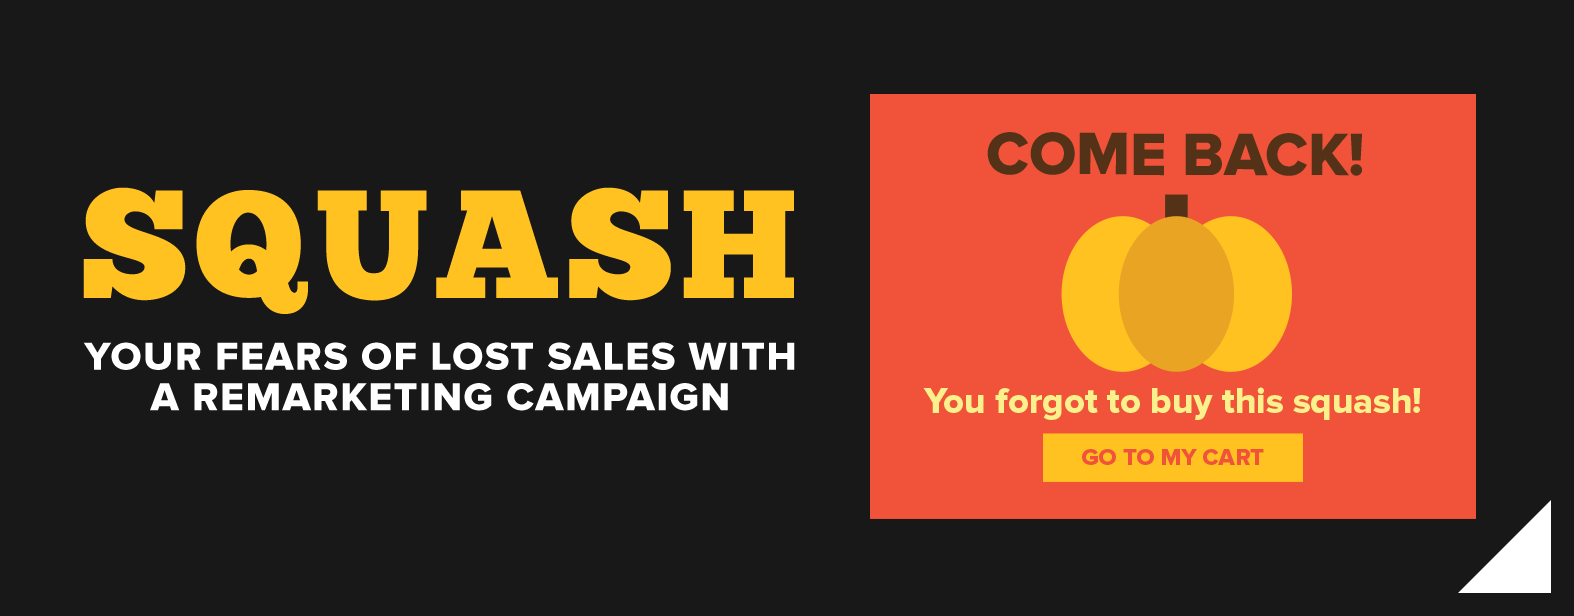 Squash your fears of lost sales with a remarketing campaign.